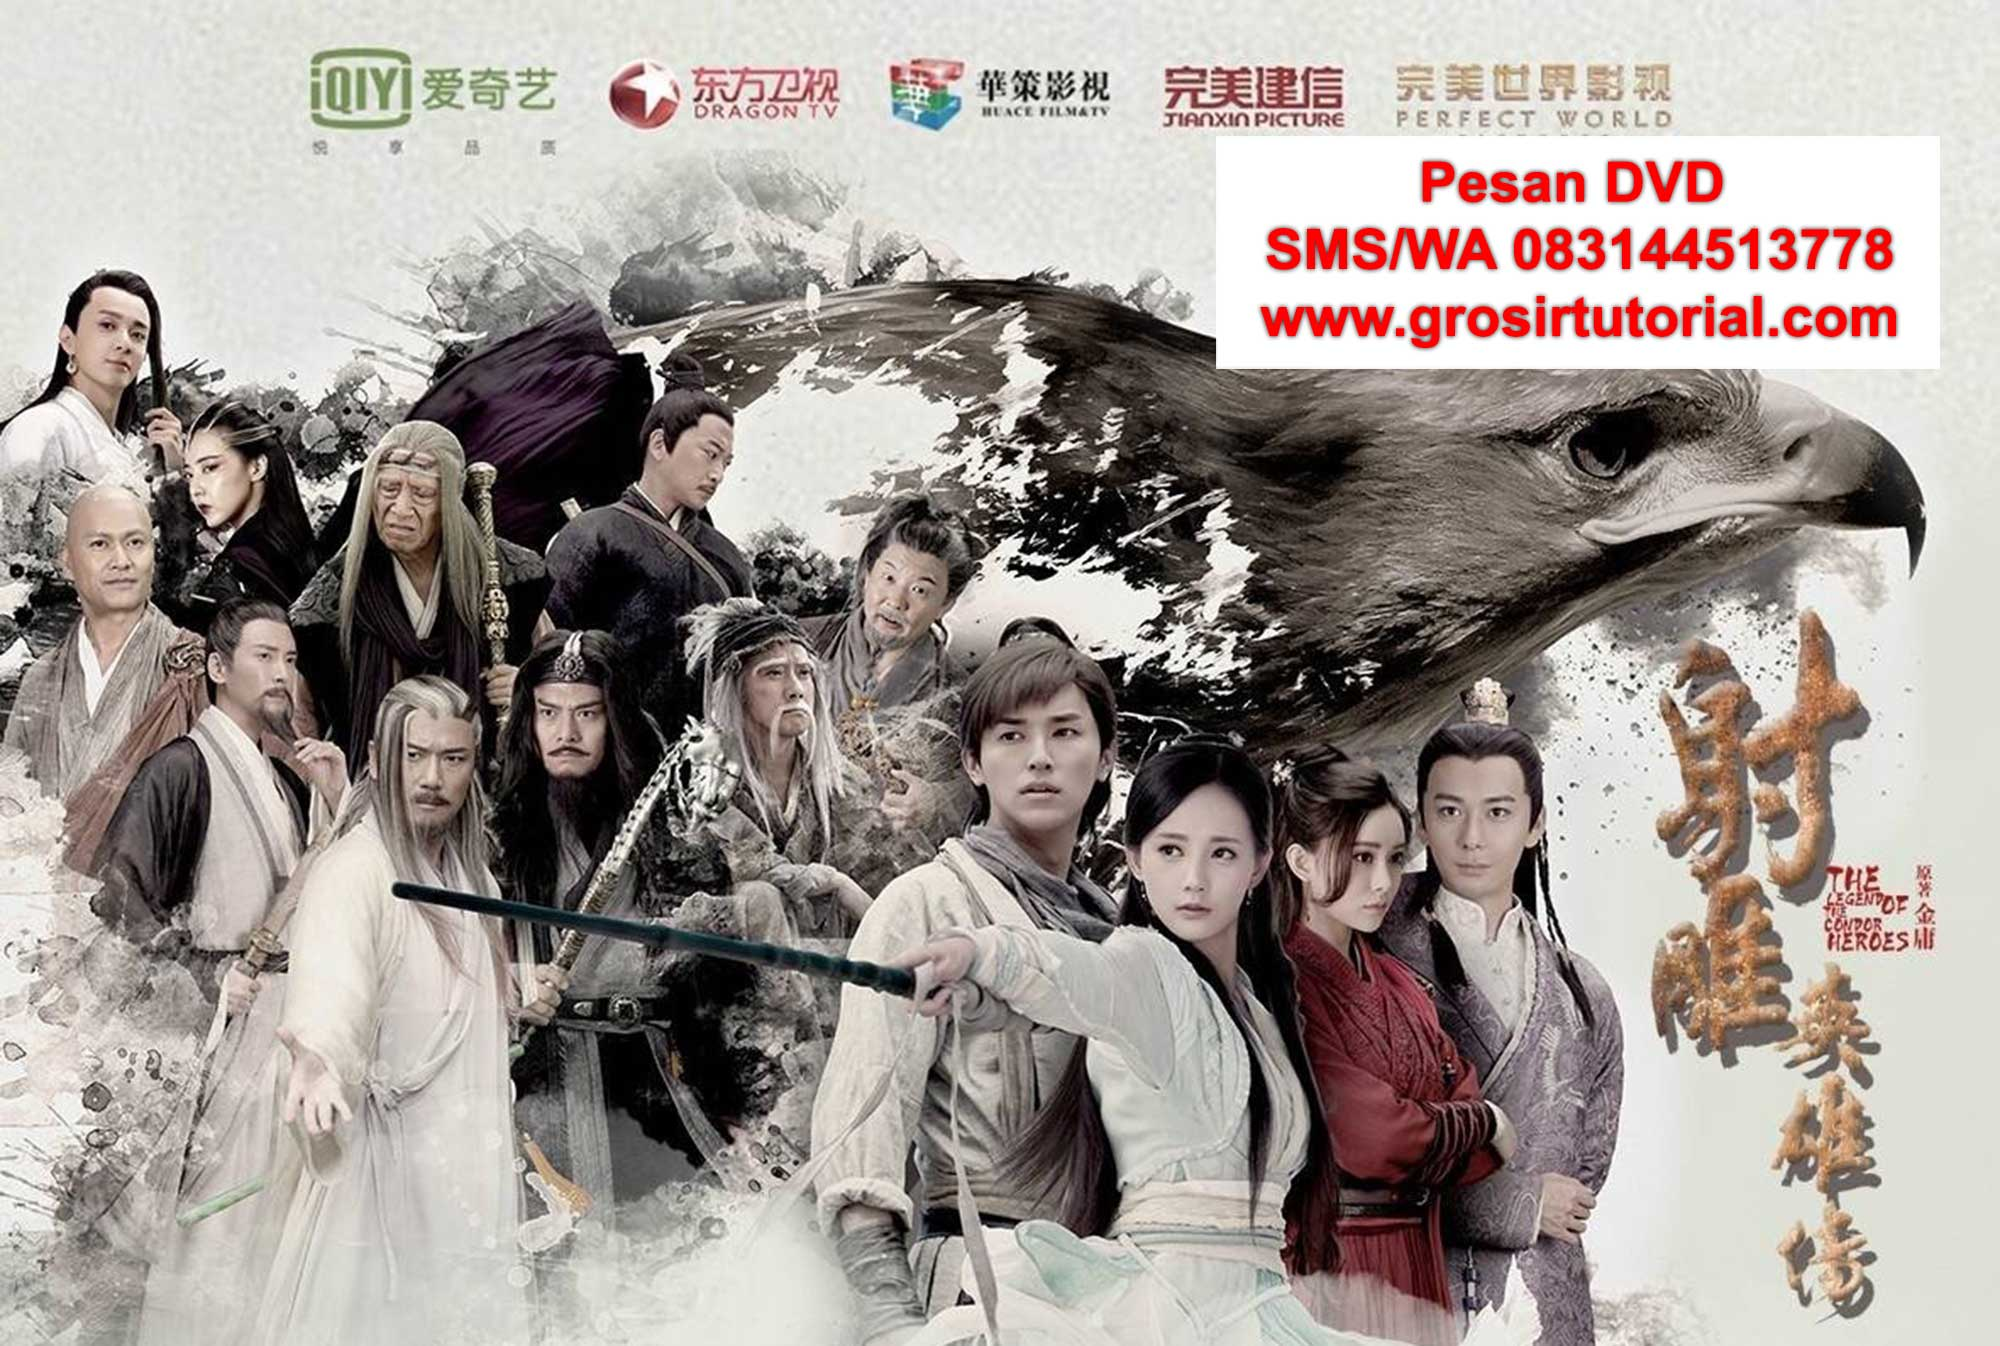 beli-DVD-mandarin-The-Legend-Of-The-Concor-Heroes-2017